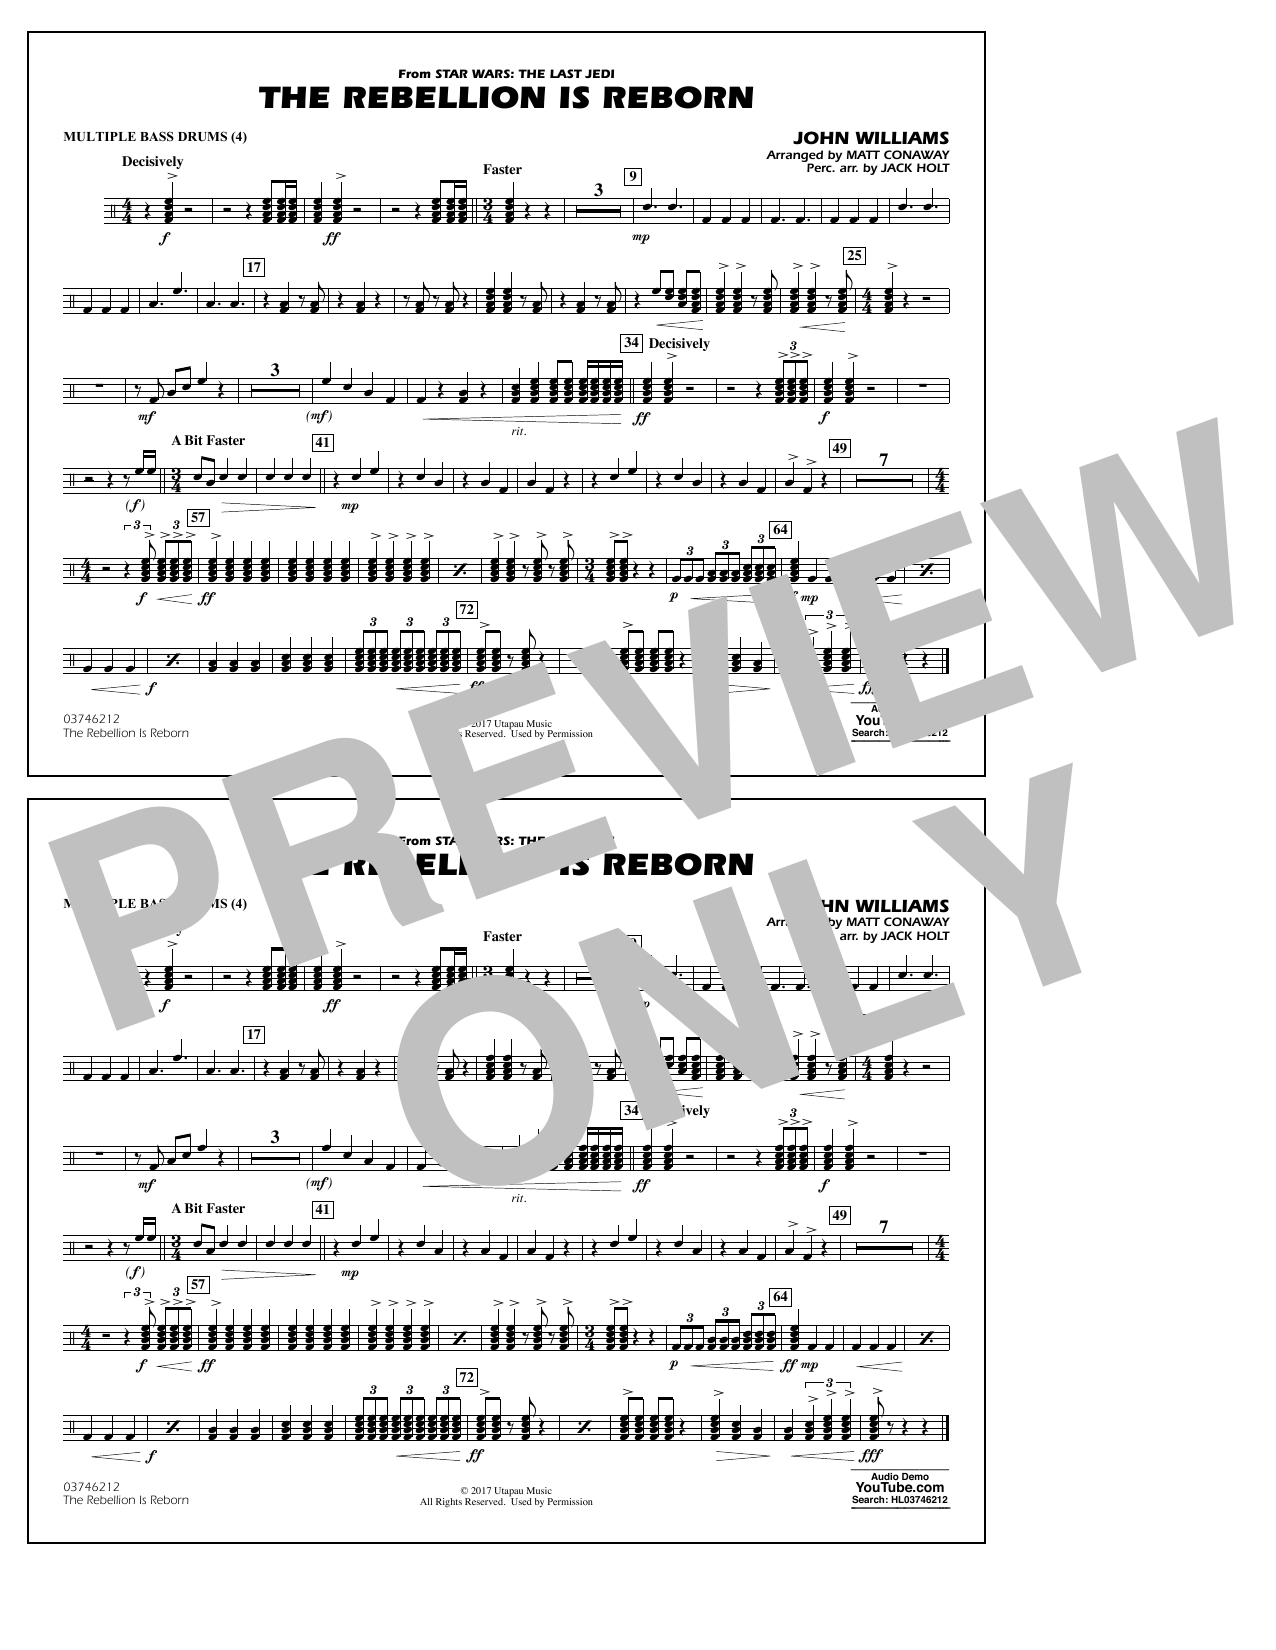 Matt Conaway The Rebellion Is Reborn - Multiple Bass Drums sheet music notes and chords